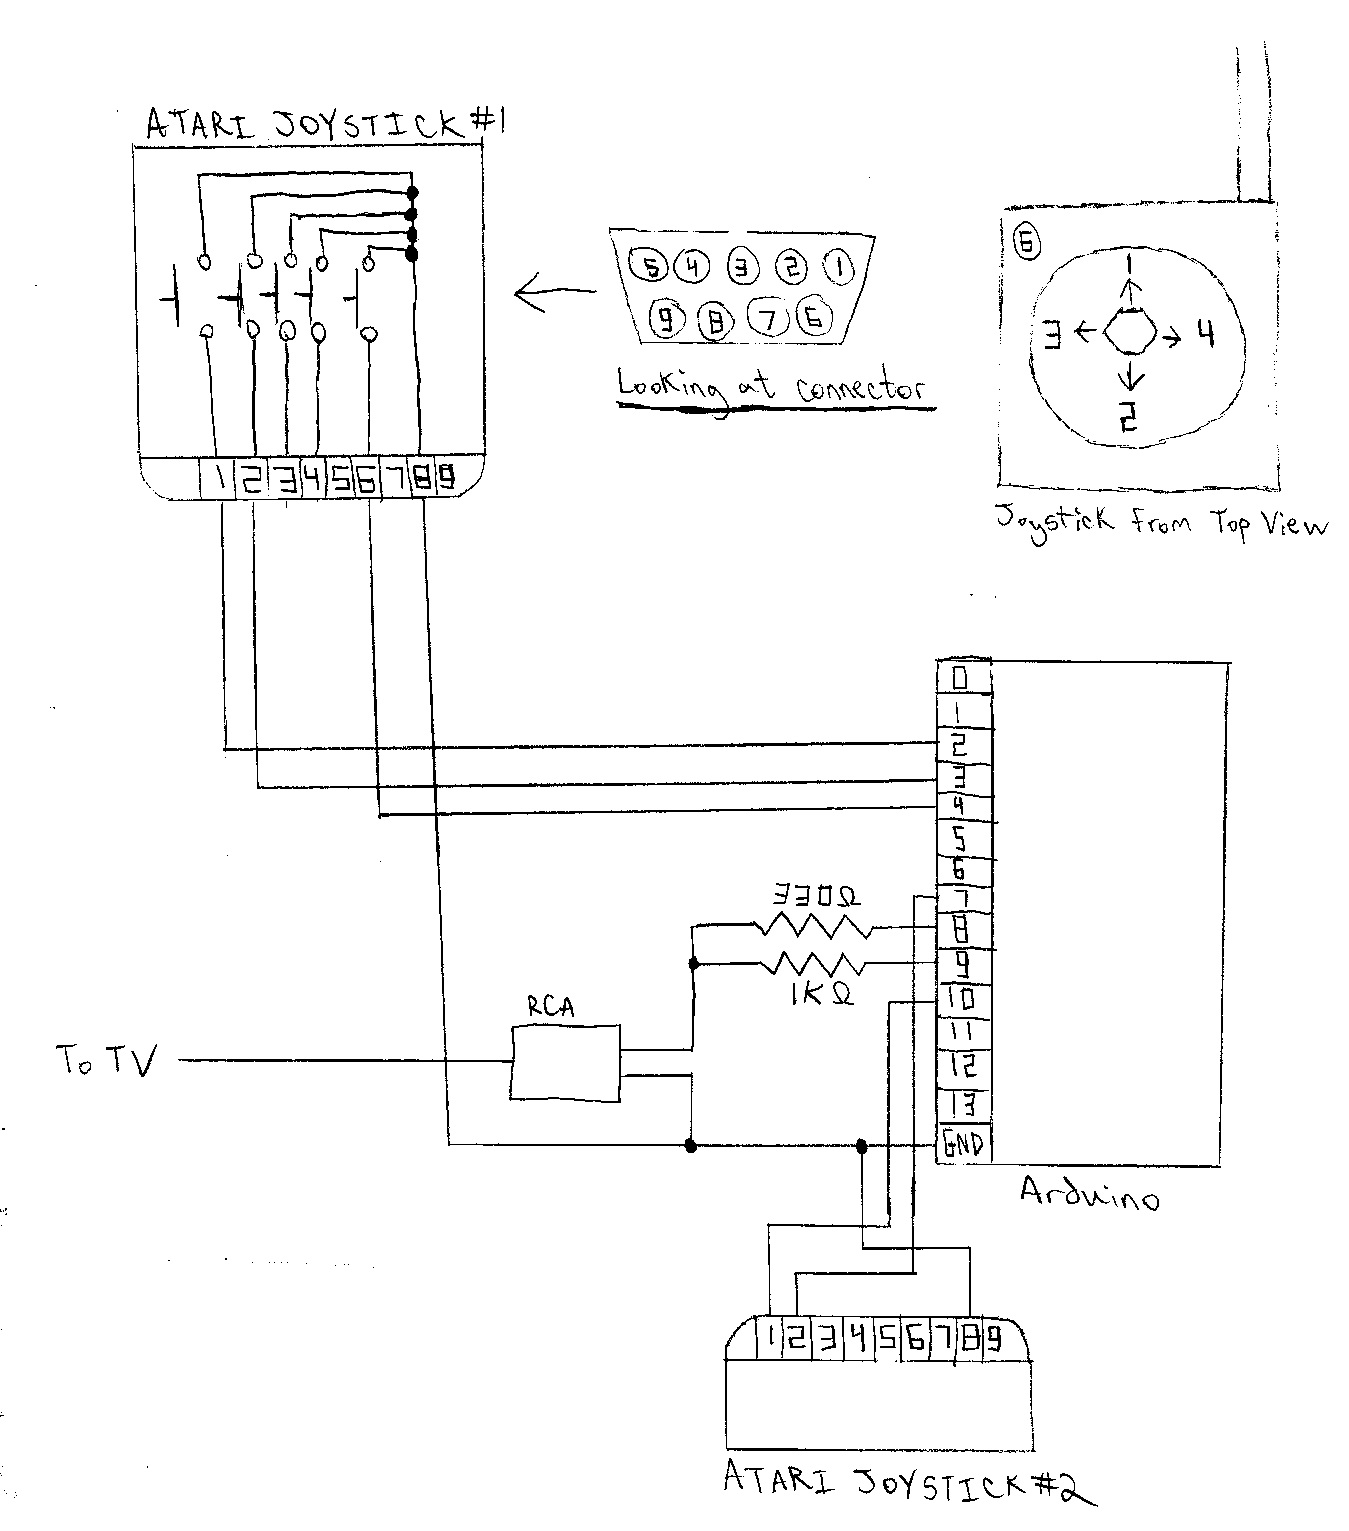 Pong Game Console - schematic